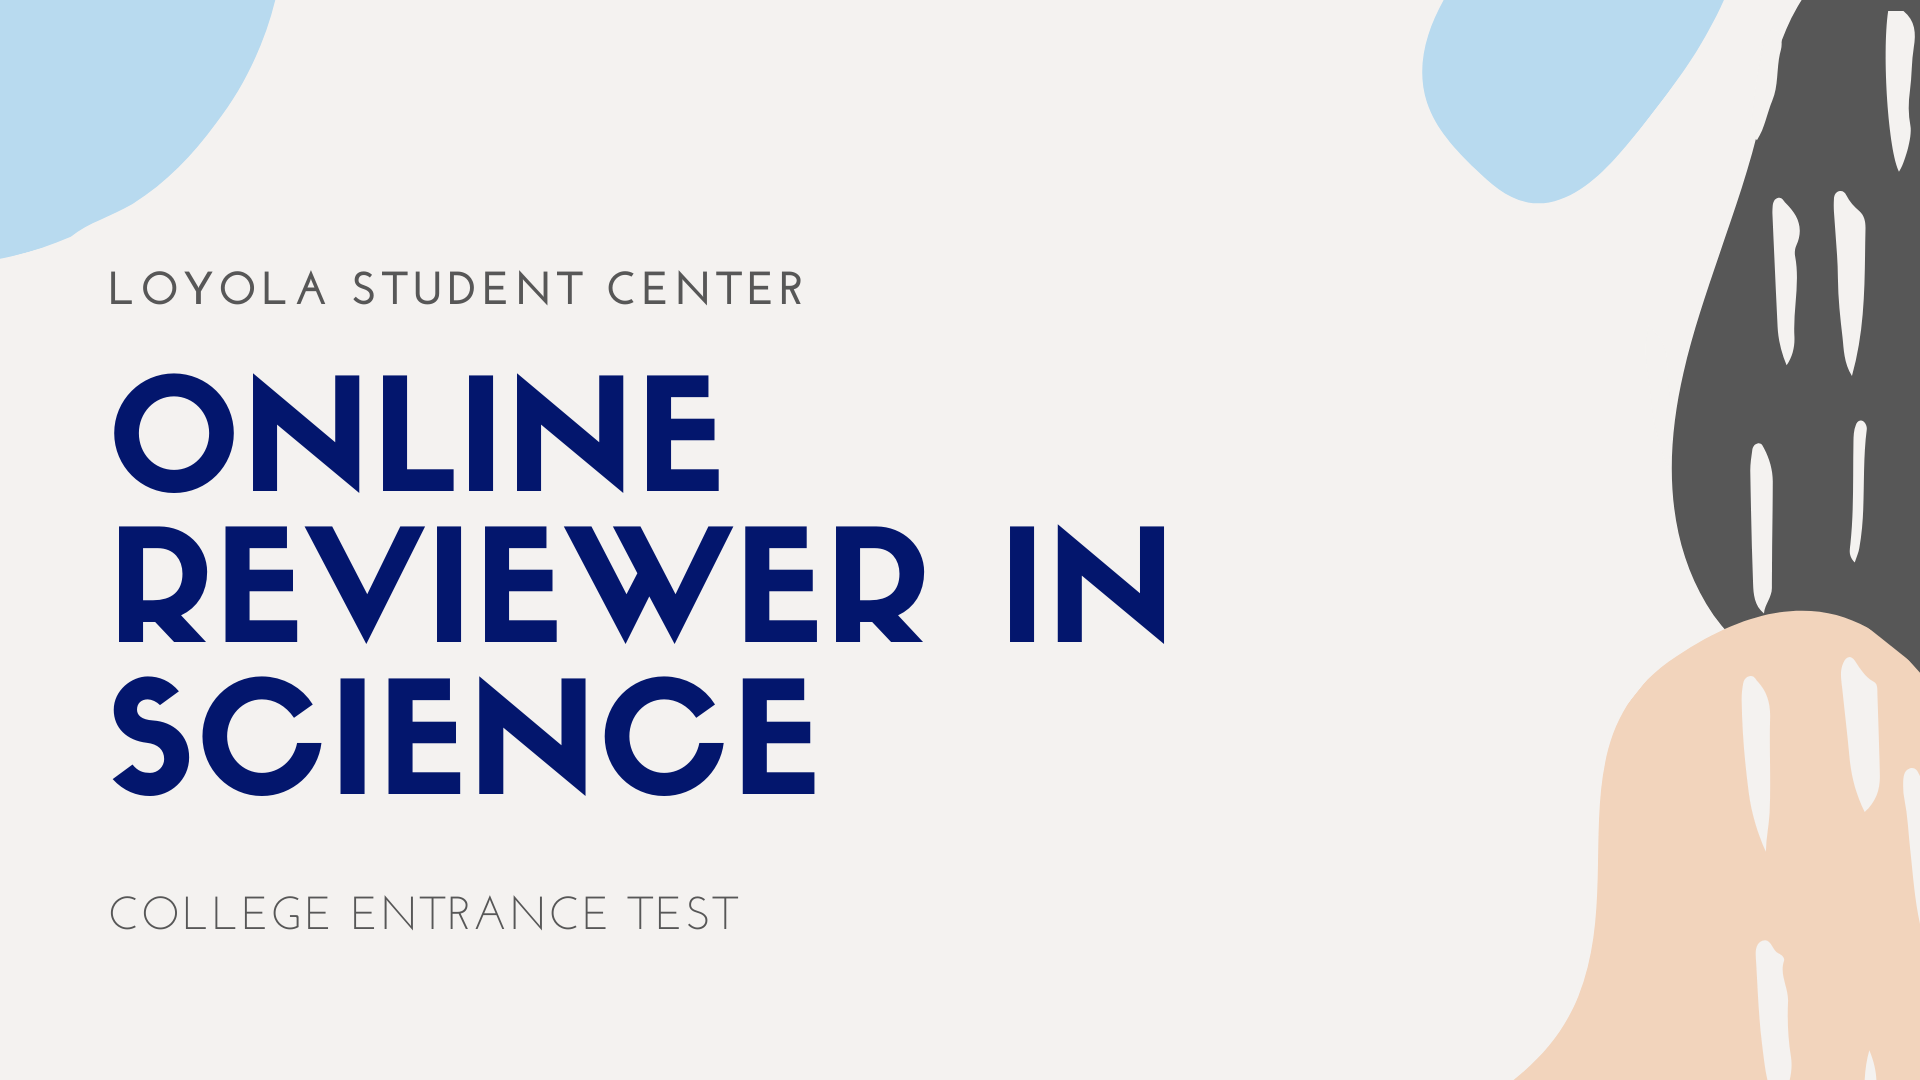 Online College Entrance Test Reviewer in Science